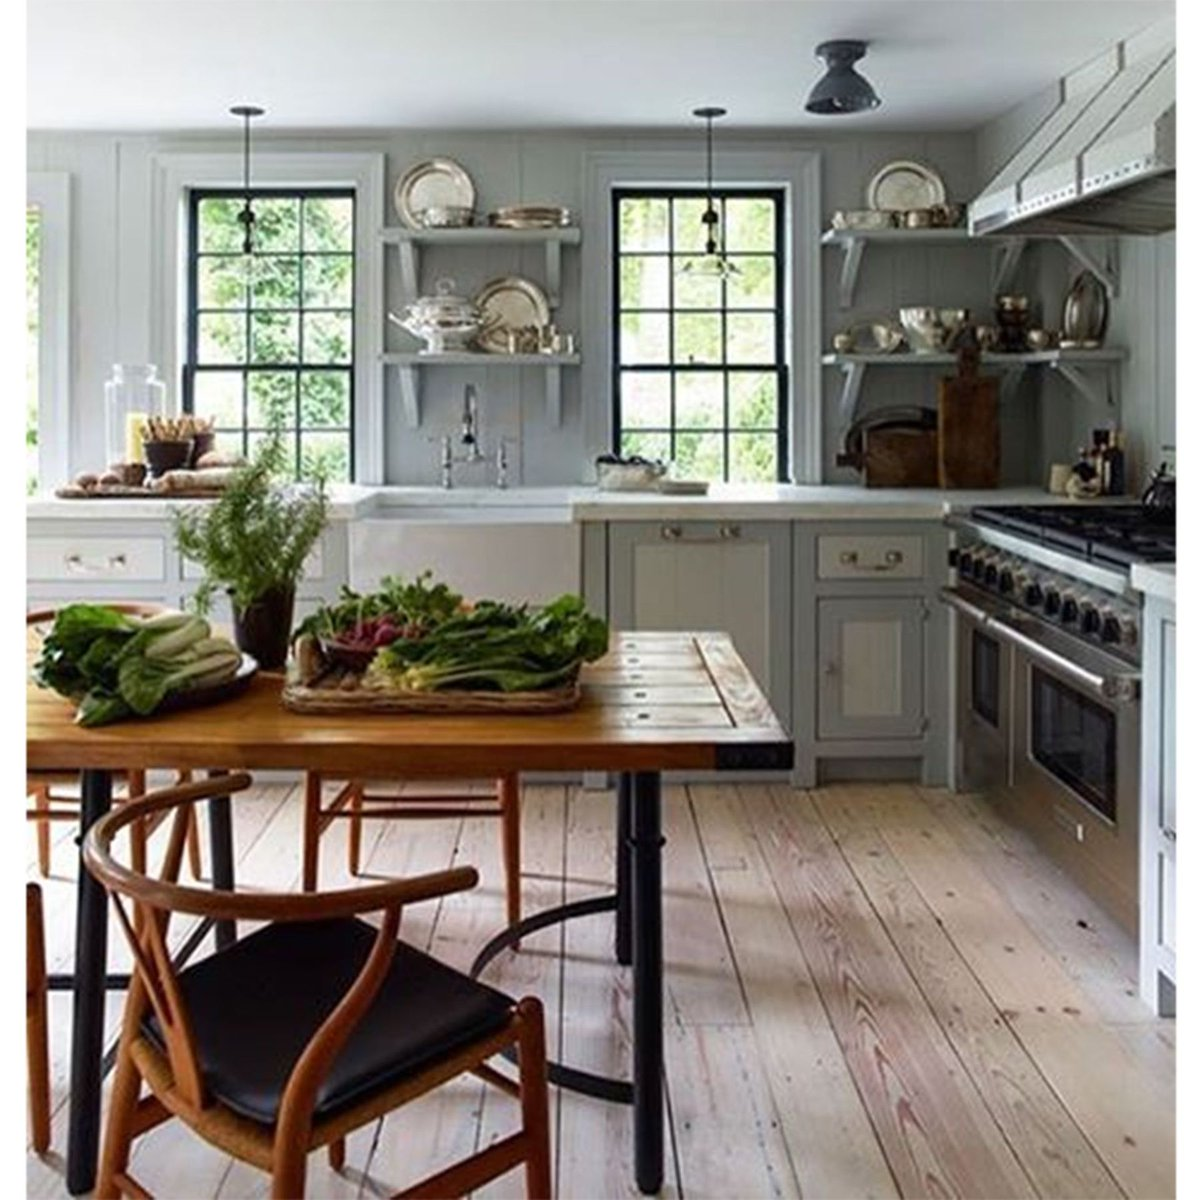 British Vogue On Twitter Prepare For Serious House Envy With Vogue S Top 10 Interior Instagram Accounts Https T Co Mh9zj9hrrf